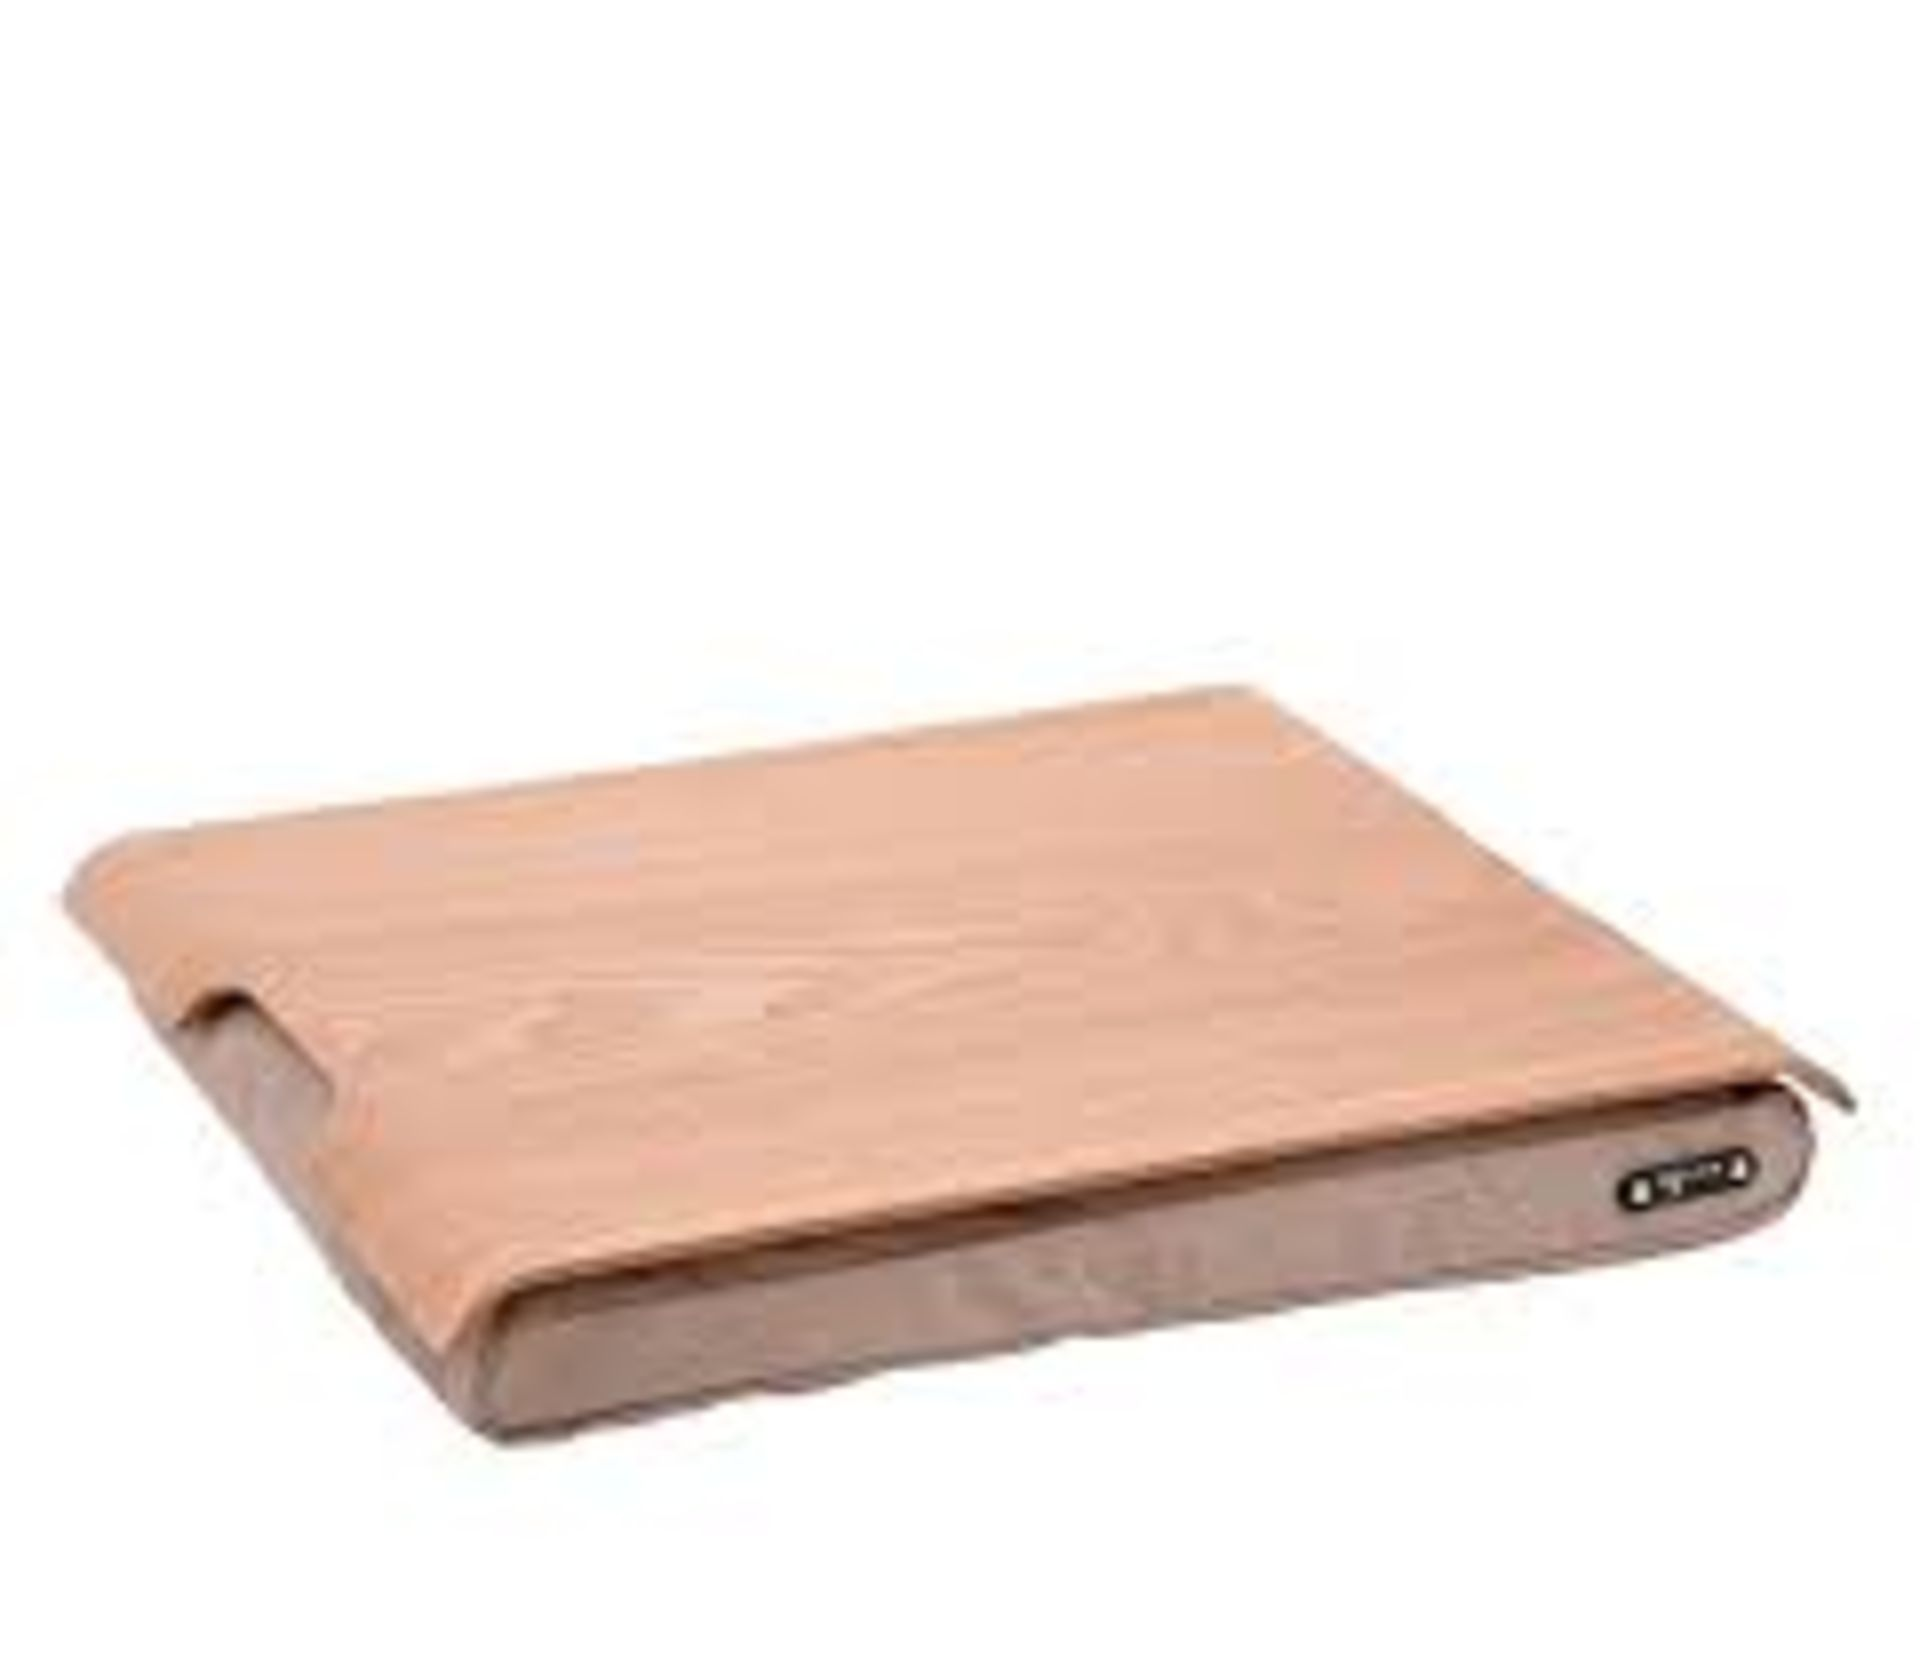 Lot 19 - Bysign Stock Home Lap Tray, RRP£60.00 (4566561) (Public Viewing and Appraisals Available)